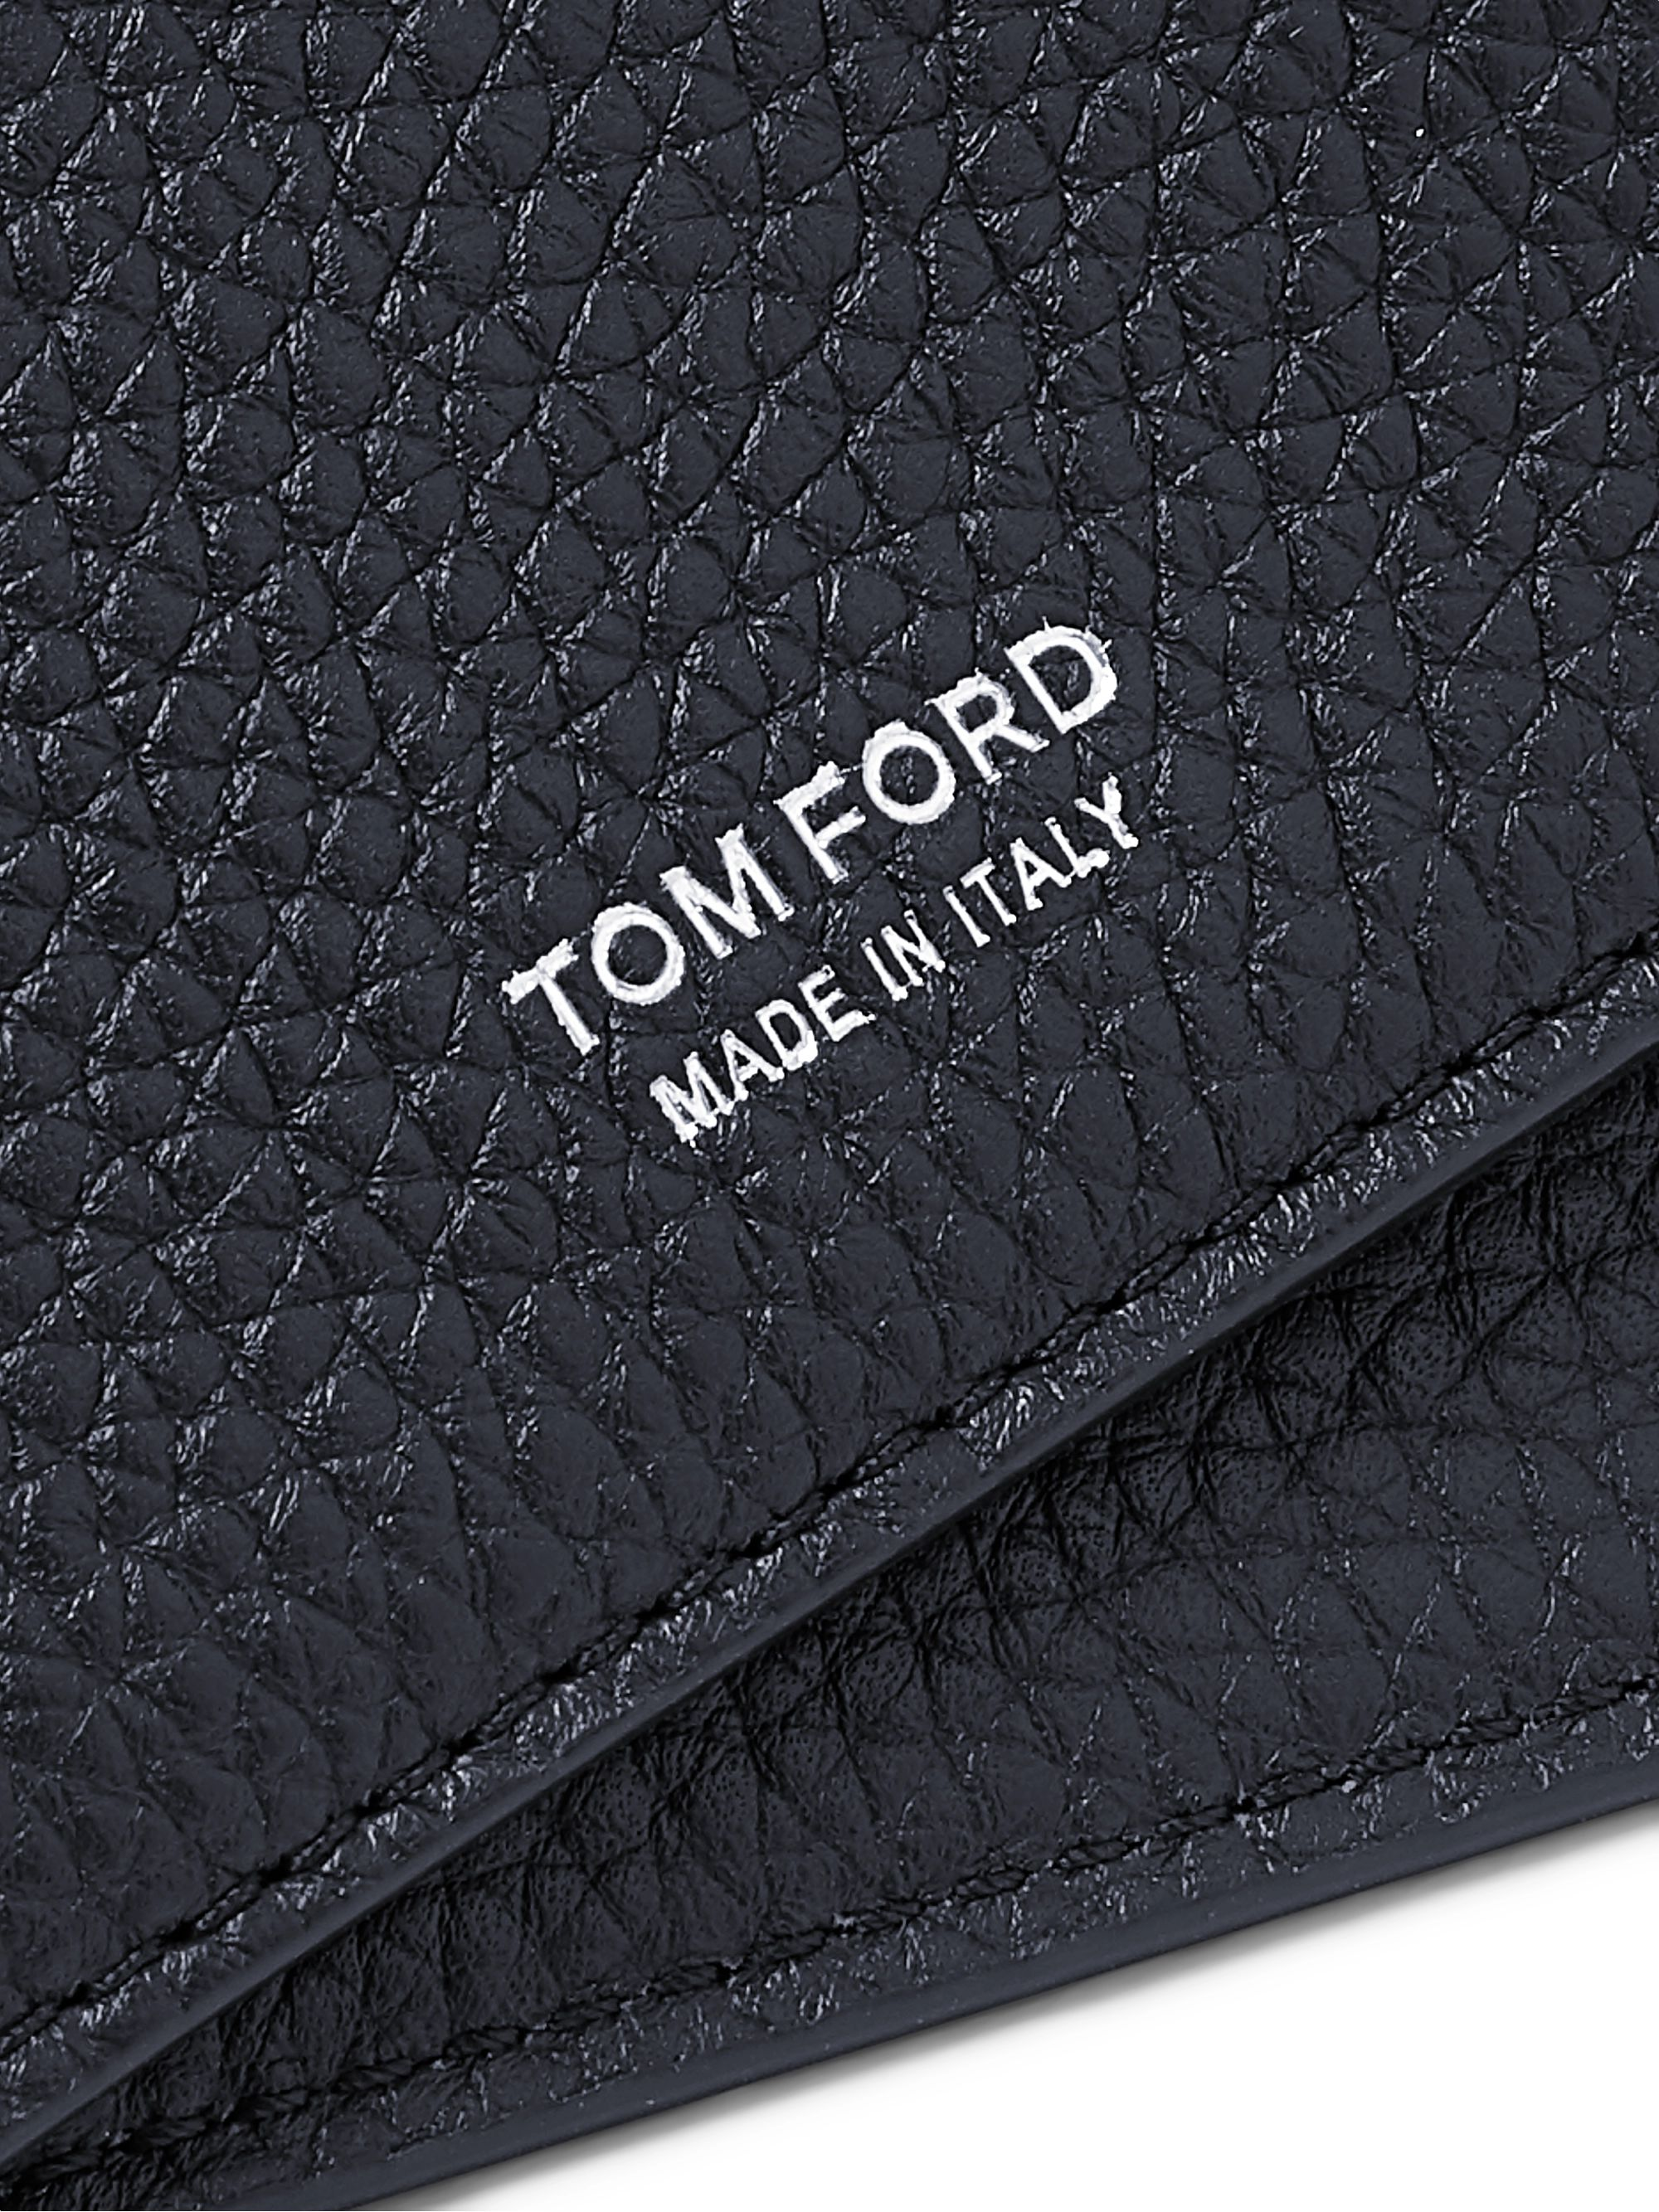 TOM FORD Full-Grain Leather Bifold Cardholder